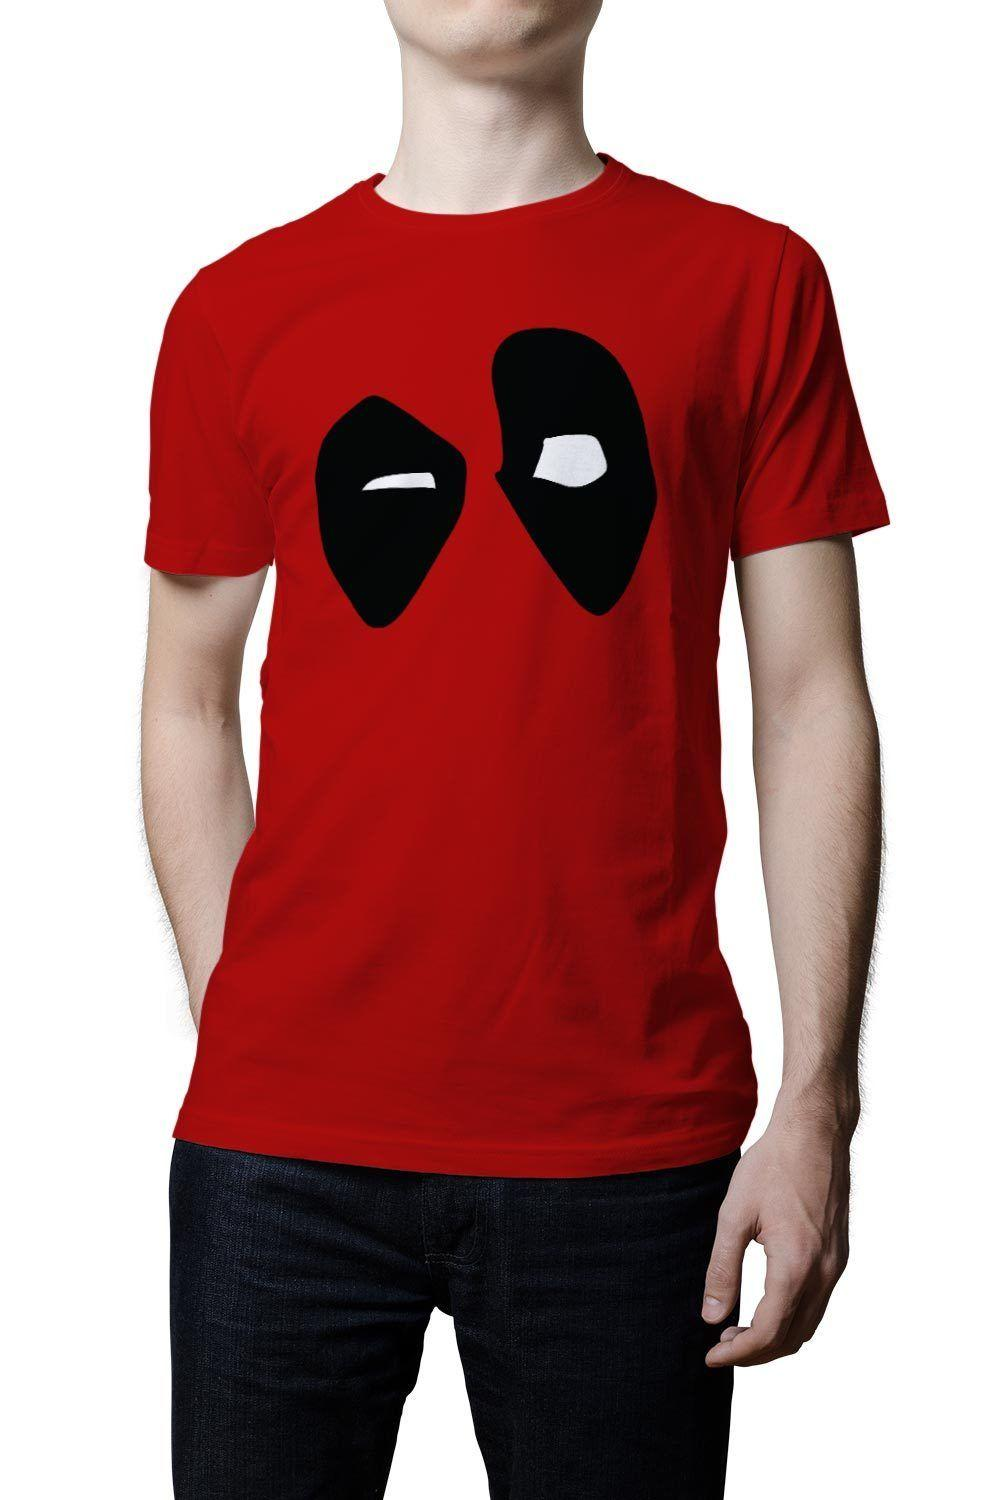 aa3c679b417 Deadpool T Shirt Dead Pool Eyes Marvel Funny Superhero Movie Tshirt Marvel  Top Funny free shipping Unisex Casual